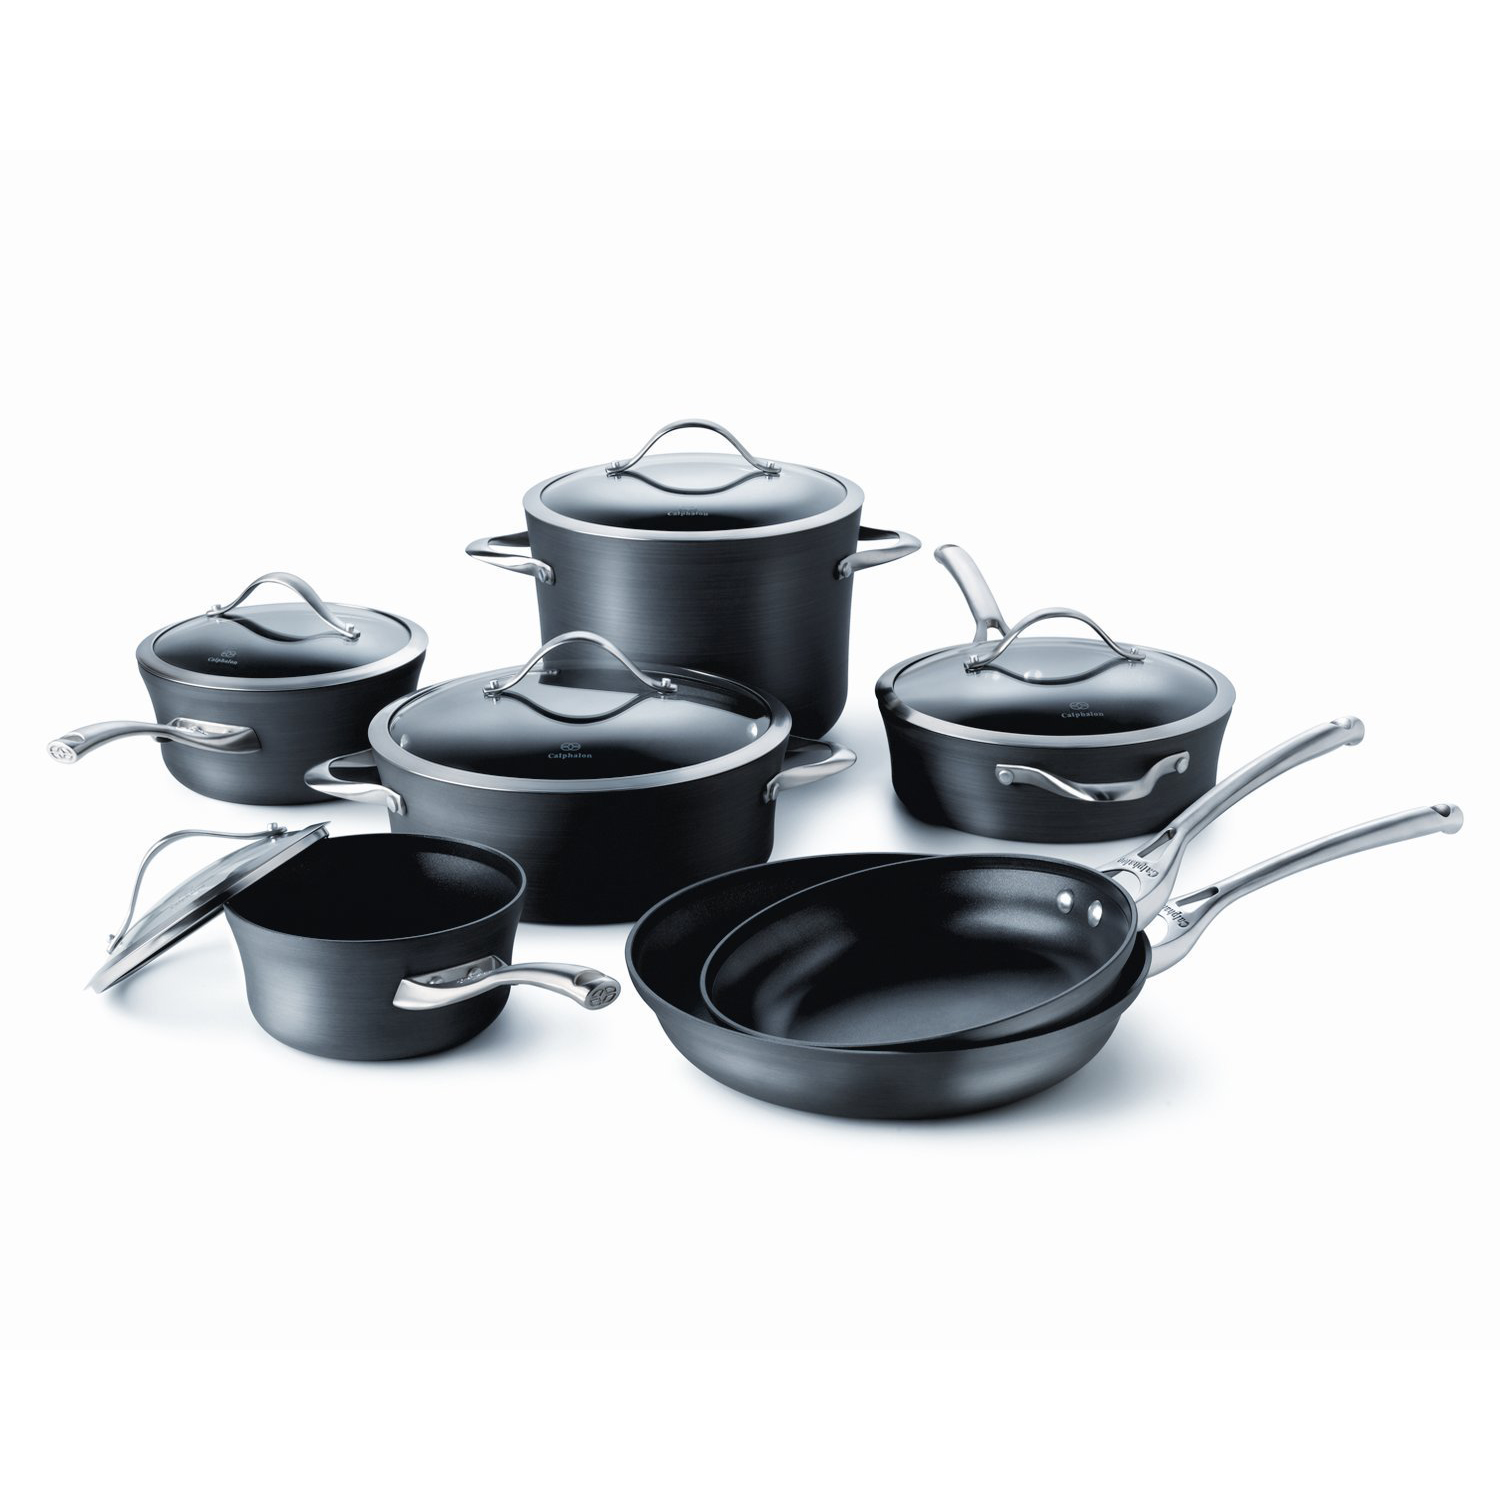 Cookware Reviews - Best Cookware